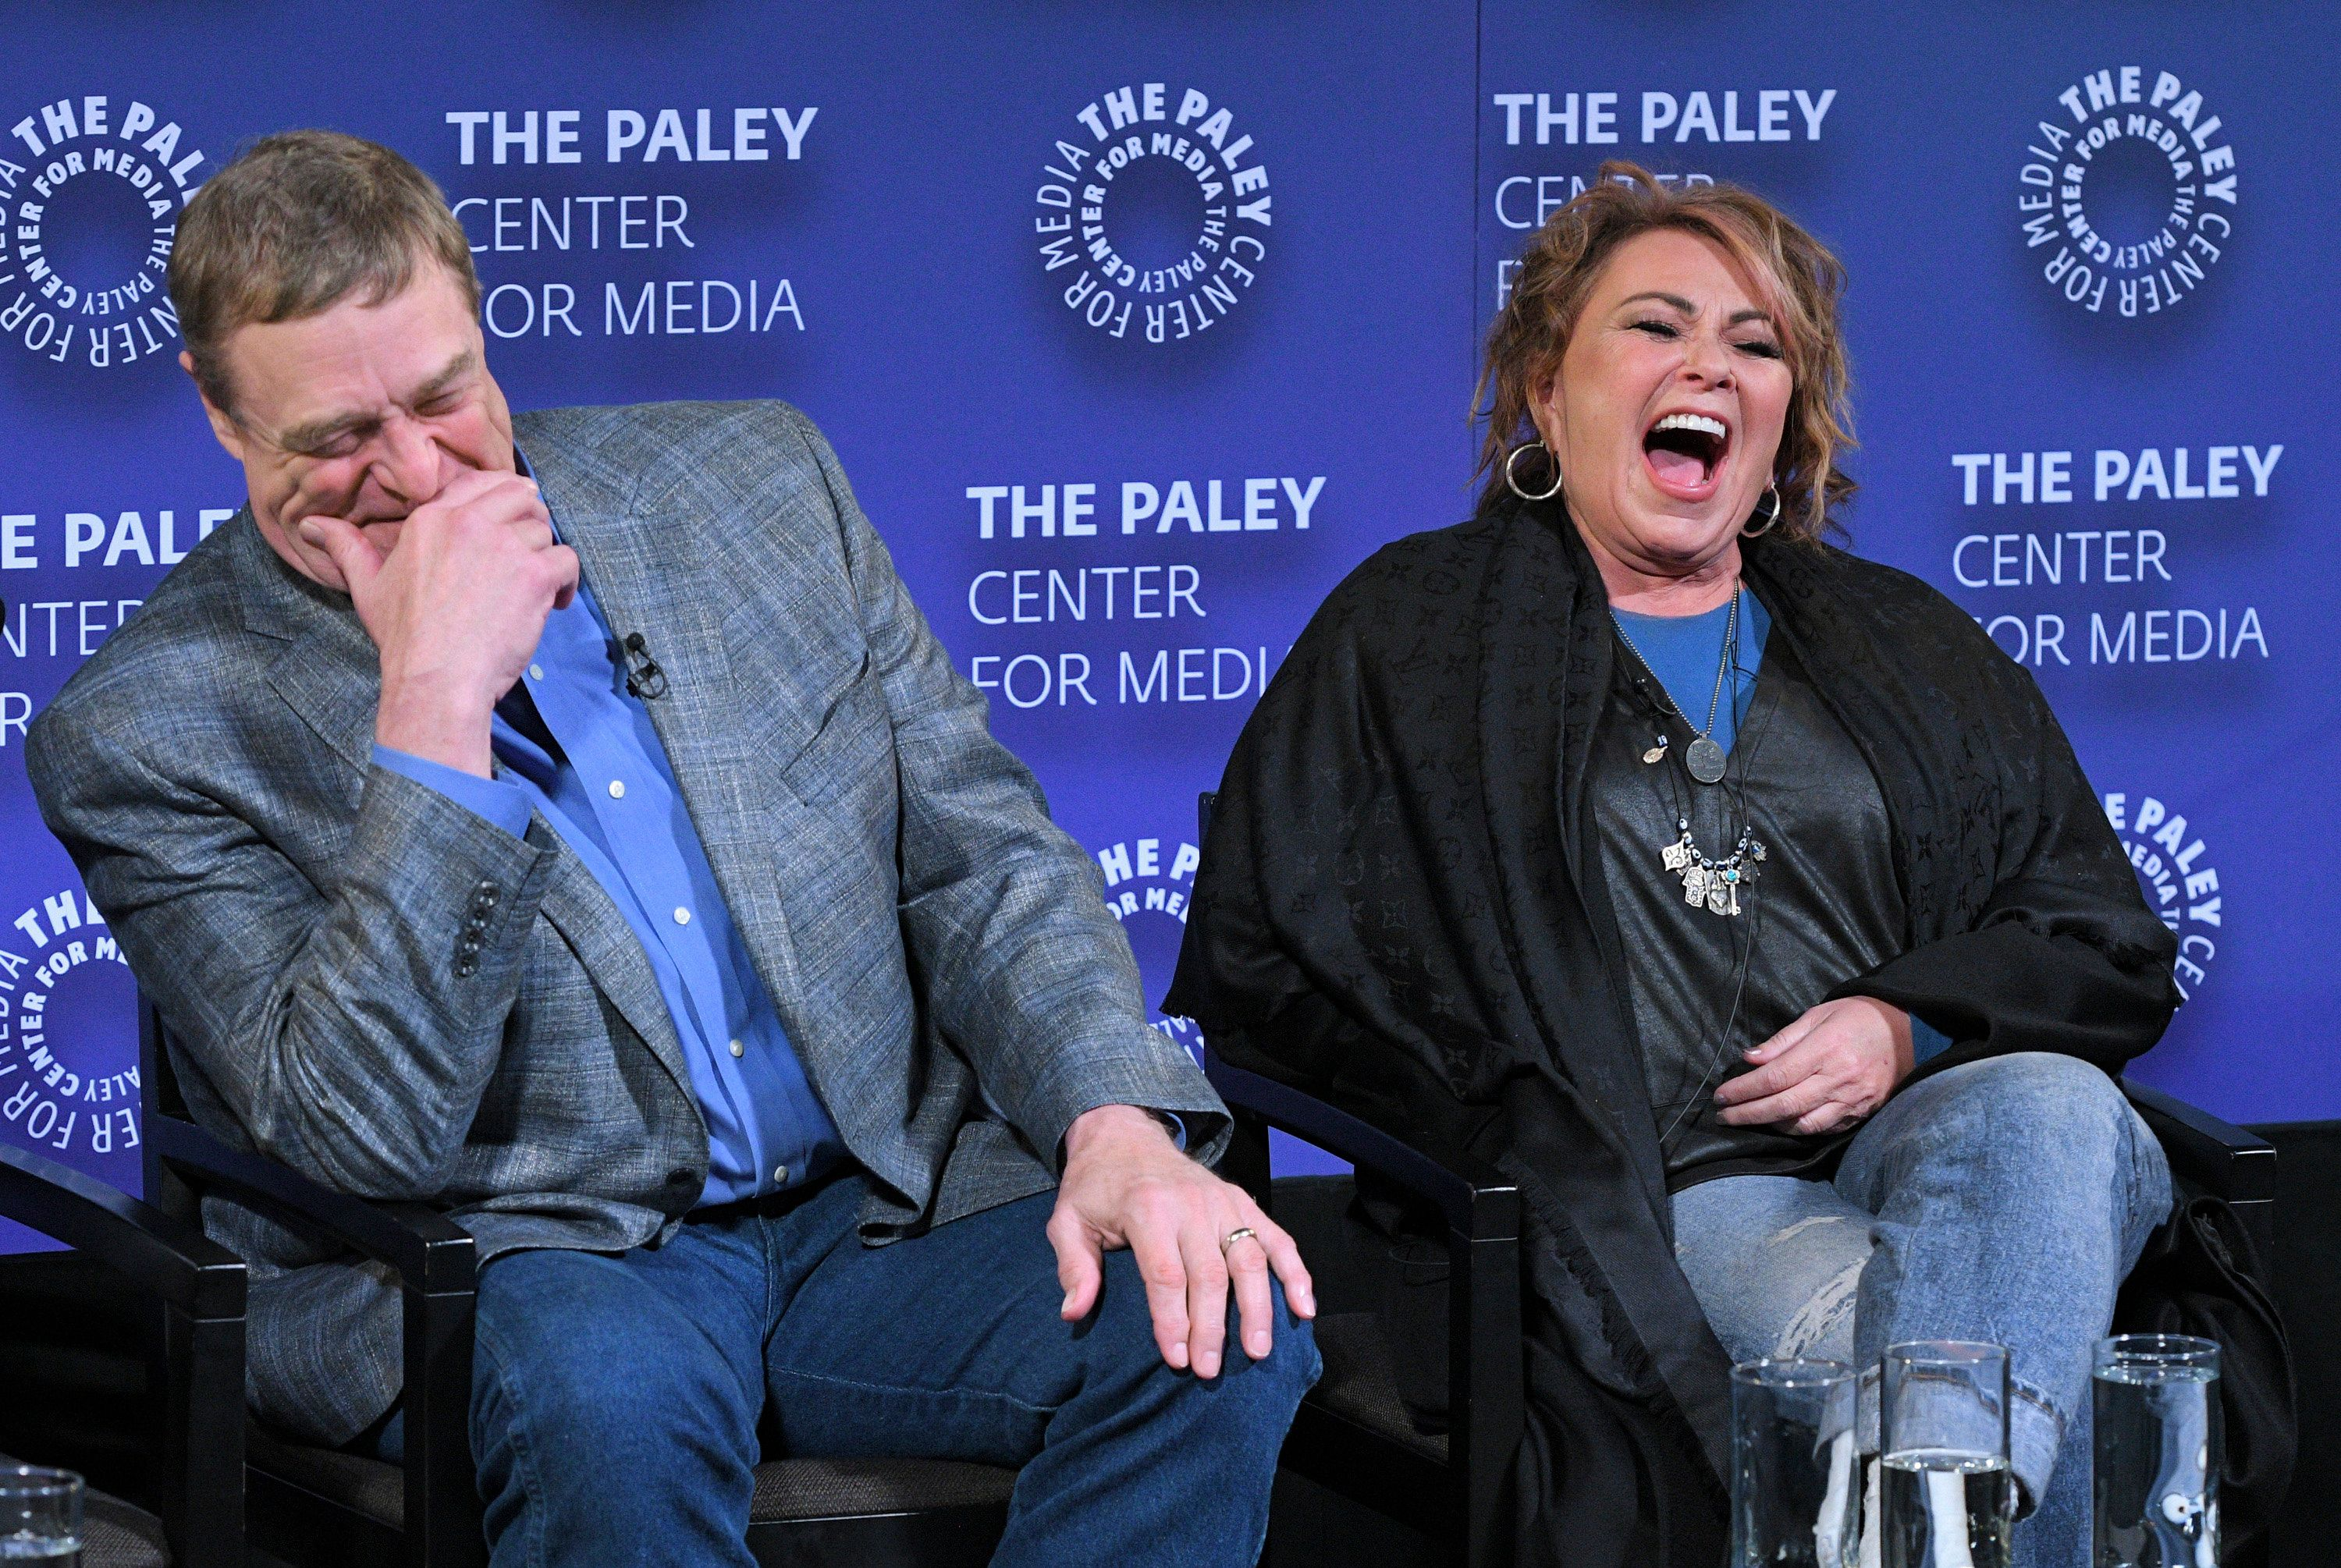 ROSEANNE - In anticipation of the show's revival for a 10th season, the ROSEANNE cast gathered for an episode screening and Q&A panel at the Paley Center for Media on Monday, March 26th in New York City. Moderated by ENTERTAINMENT WEEKLY's Kristen Baldwin, the sold-out crowd heard stories from stars Roseanne Barr, John Goodman, Sara Gilbert, Lecy Goranson, Michael Fishman and Sarah Chalke. ROSEANNE airs Tuesday nights at 8PM ET on the ABC Television Network. (Lorenzo Bevilaqua via Getty Images) JOHN GOODMAN, ROSEANNE BARR (EXECUTIVE PRODUCER)